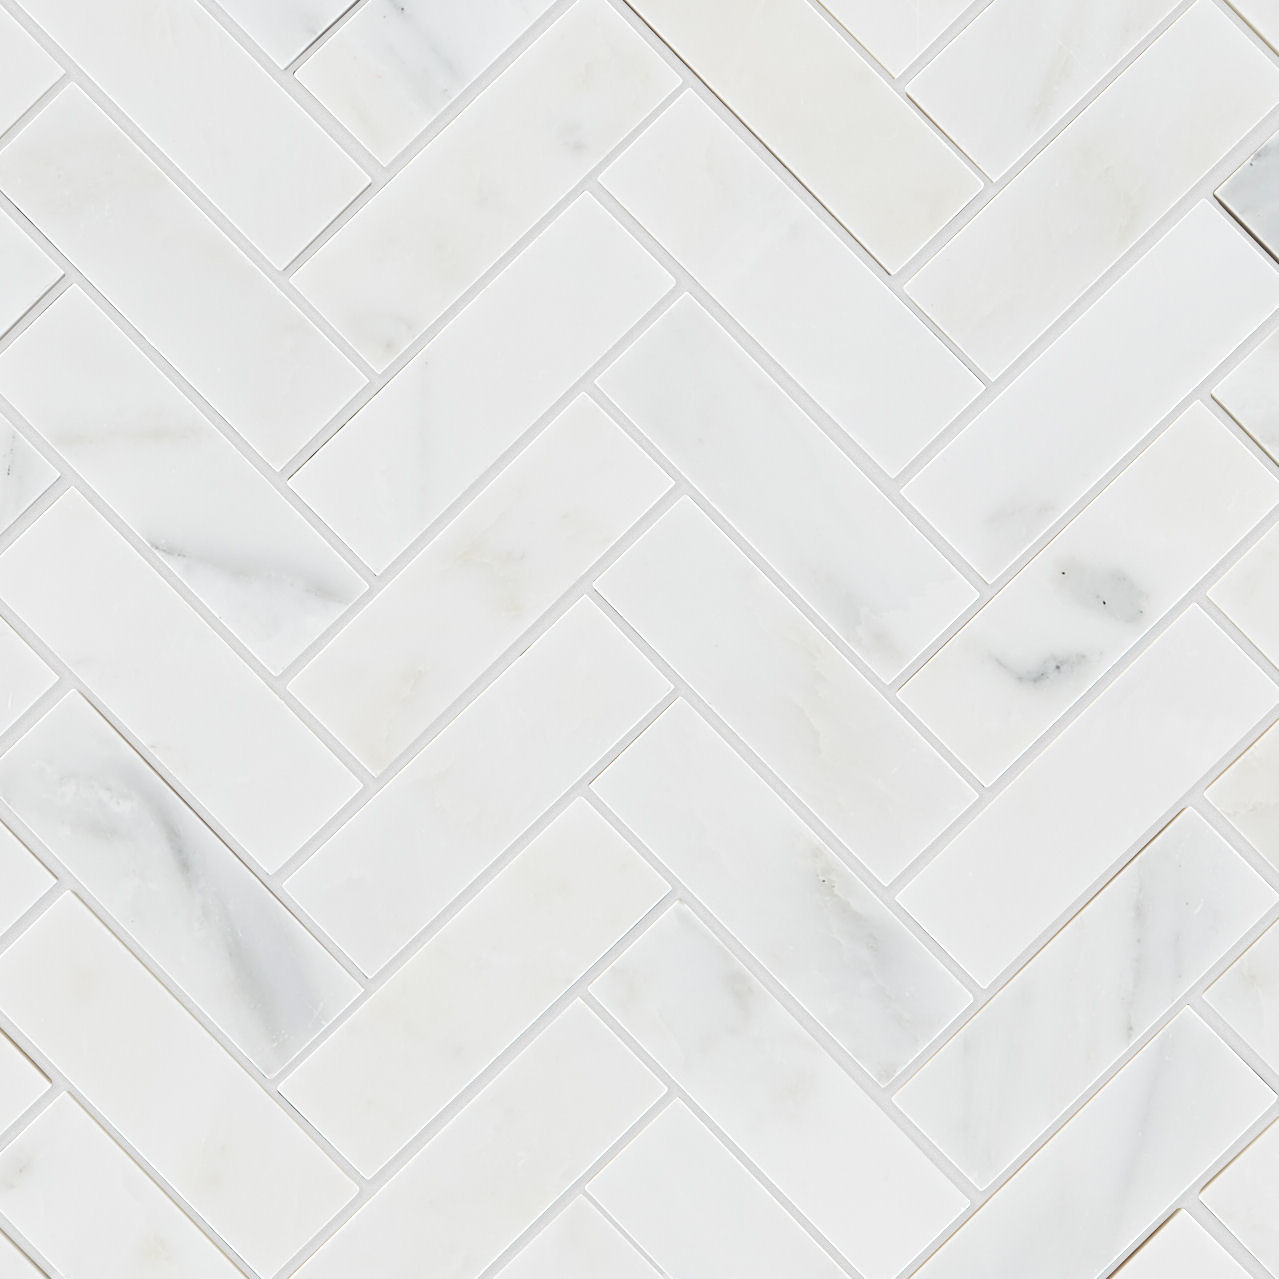 Herringbone Tiles Uk